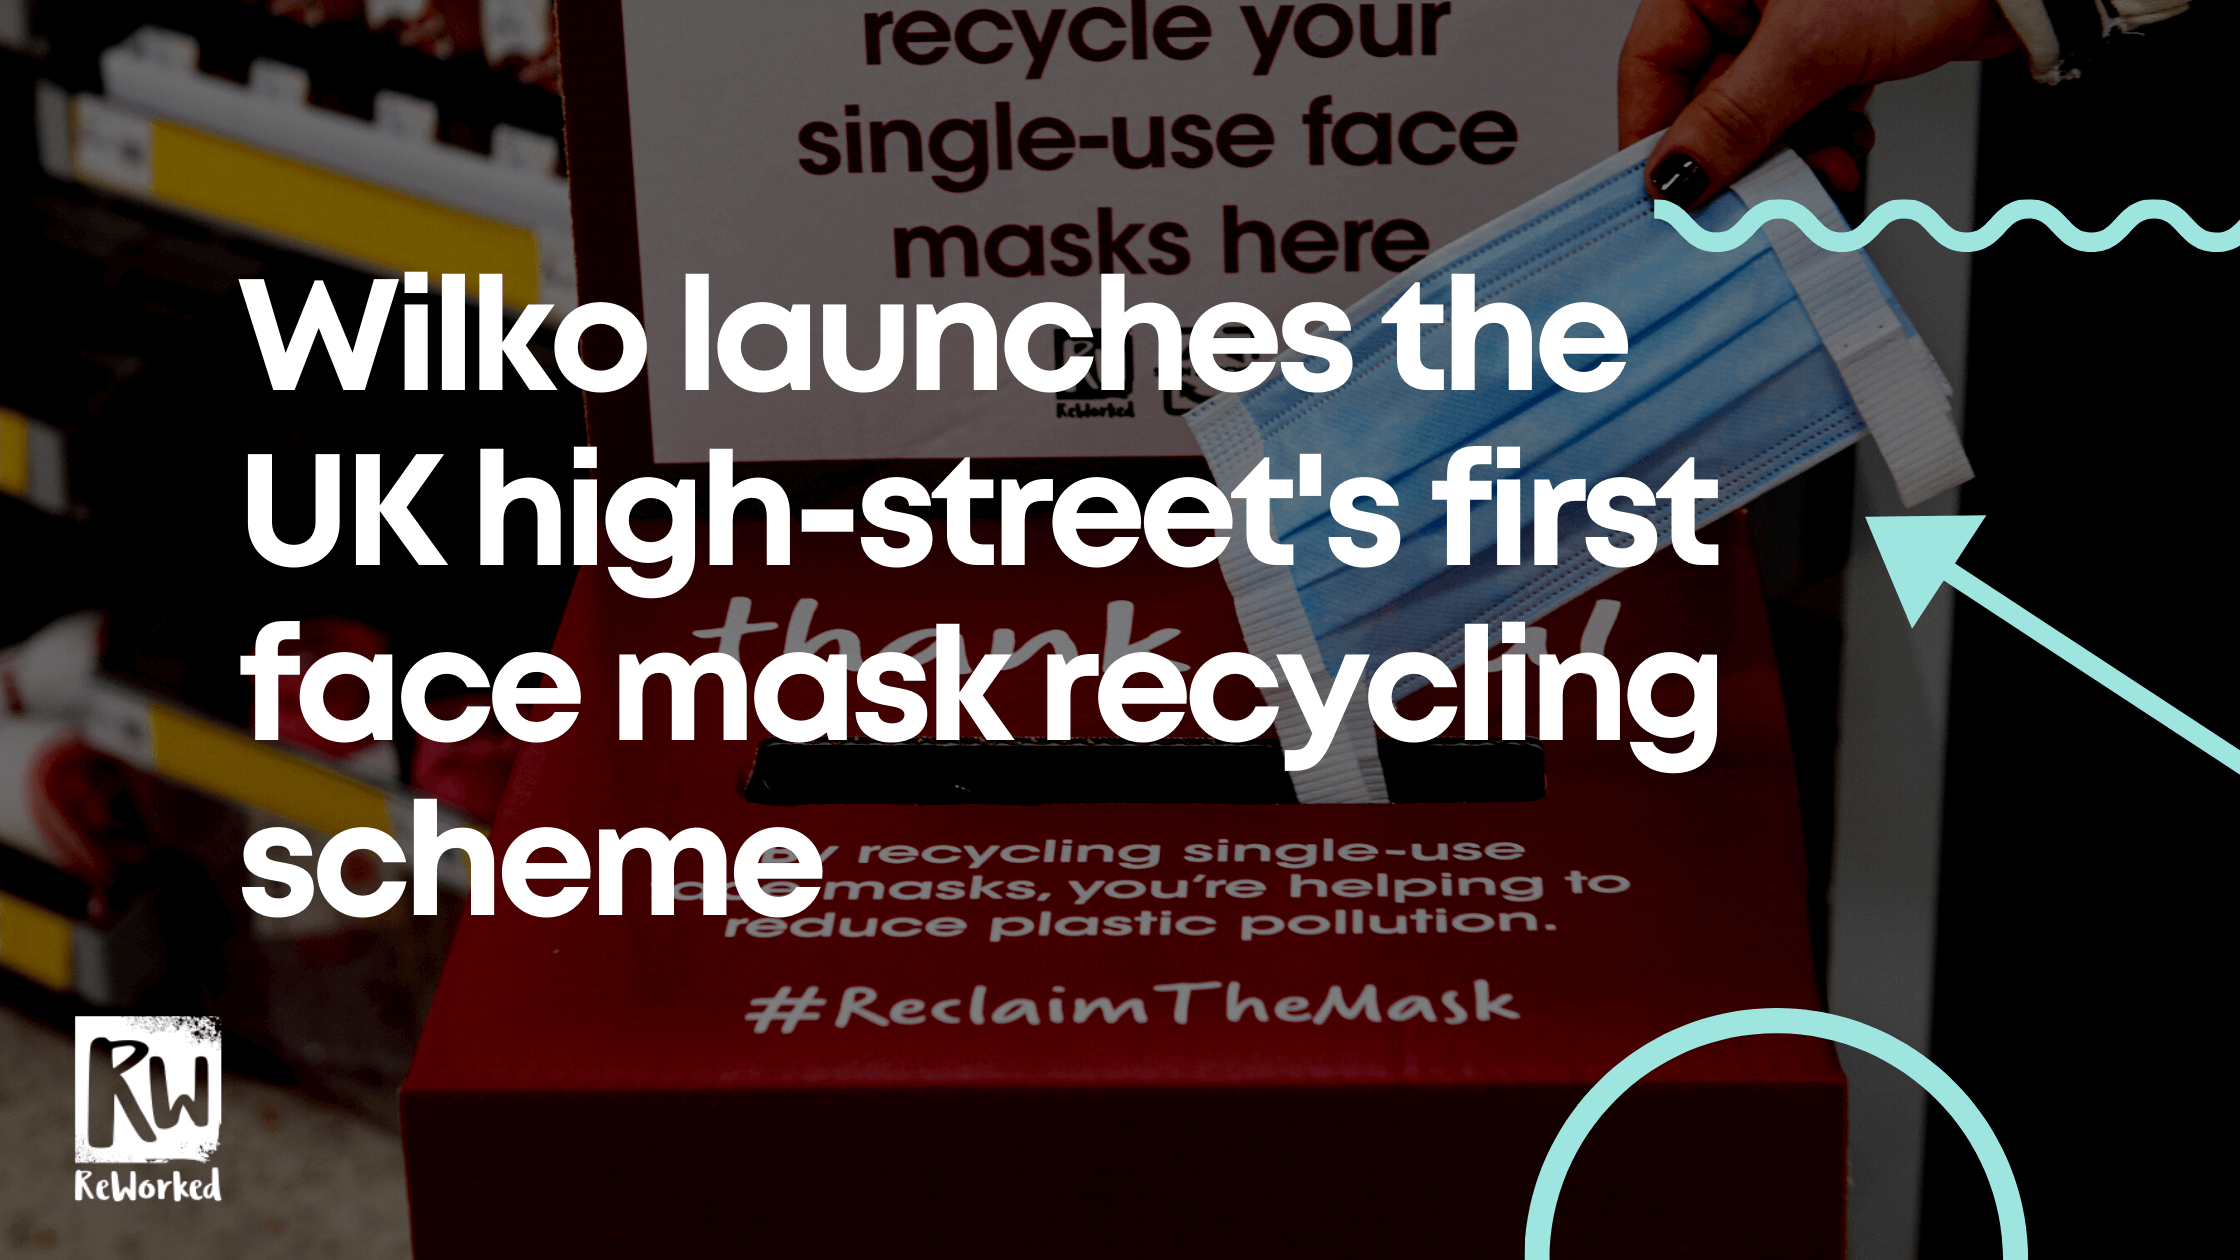 WILKO launches the UK high-street's first face mask recycling scheme